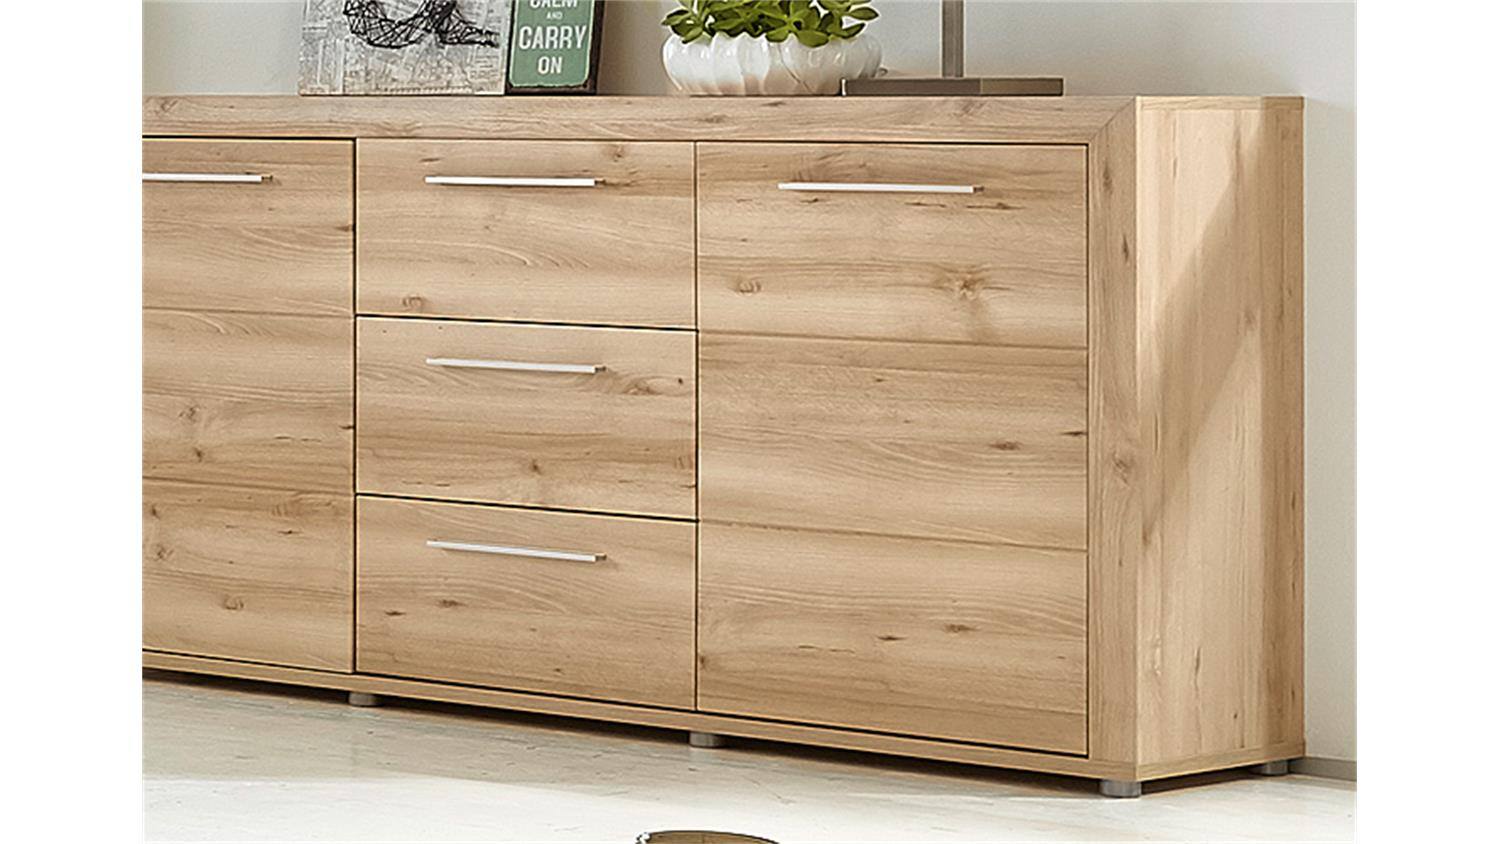 sideboard run kommode anrichte wohnzimmerkommode buche hell. Black Bedroom Furniture Sets. Home Design Ideas